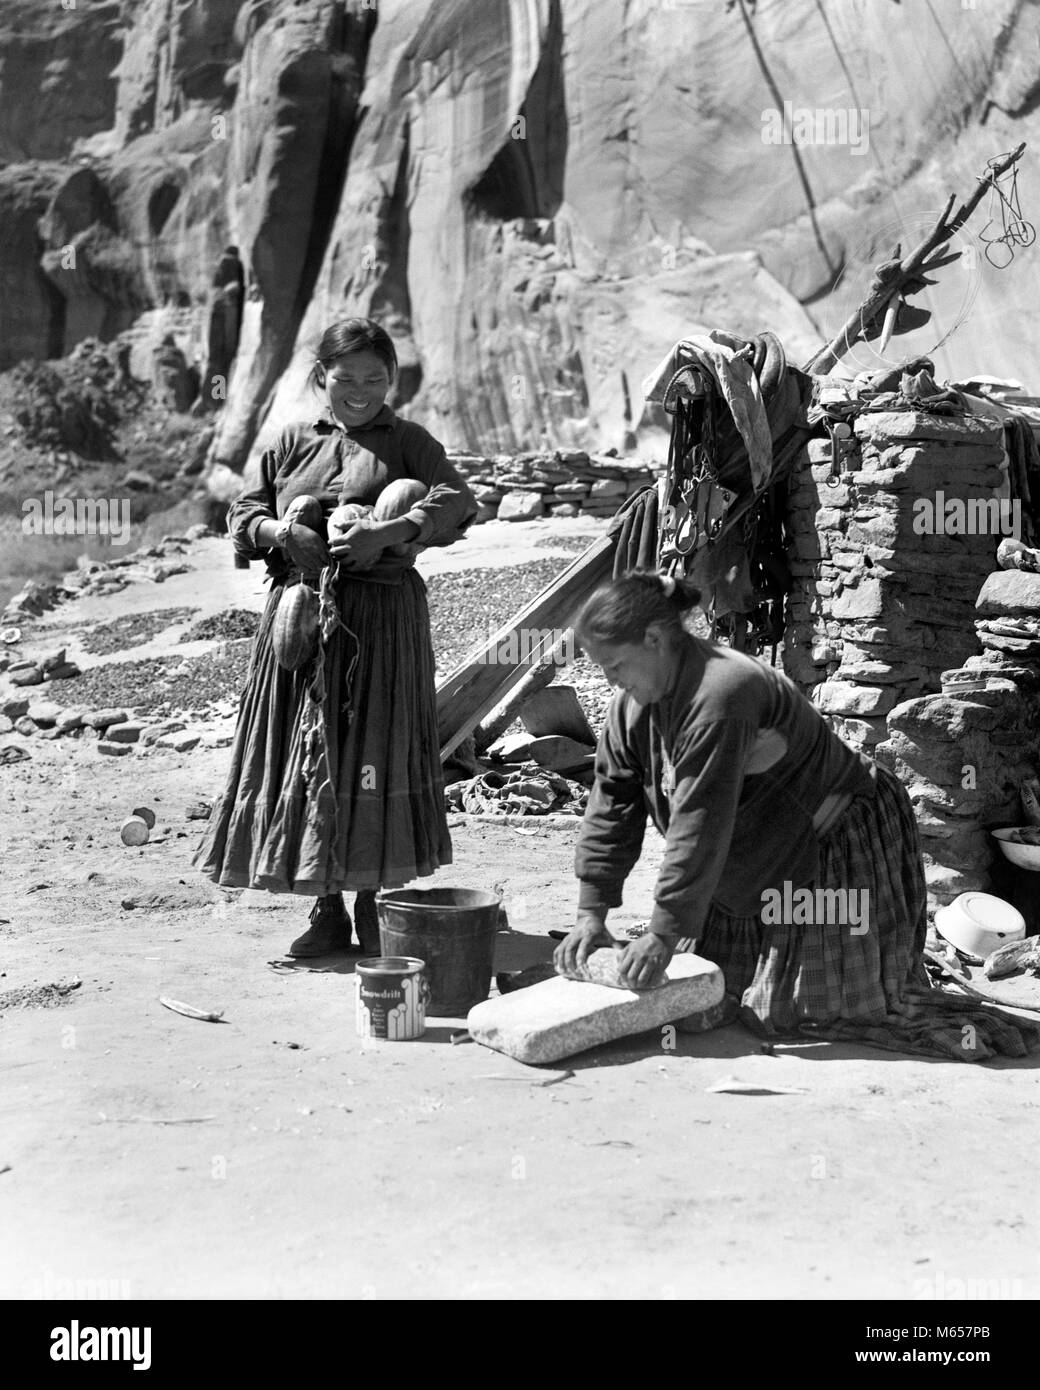 1930s TWO NATIVE AMERICAN NAVAJO INDIAN WOMEN GRINDING CORN AND HARVESTING SQUASH CANYON DEL MUERTO ARIZONA USA - Stock Image